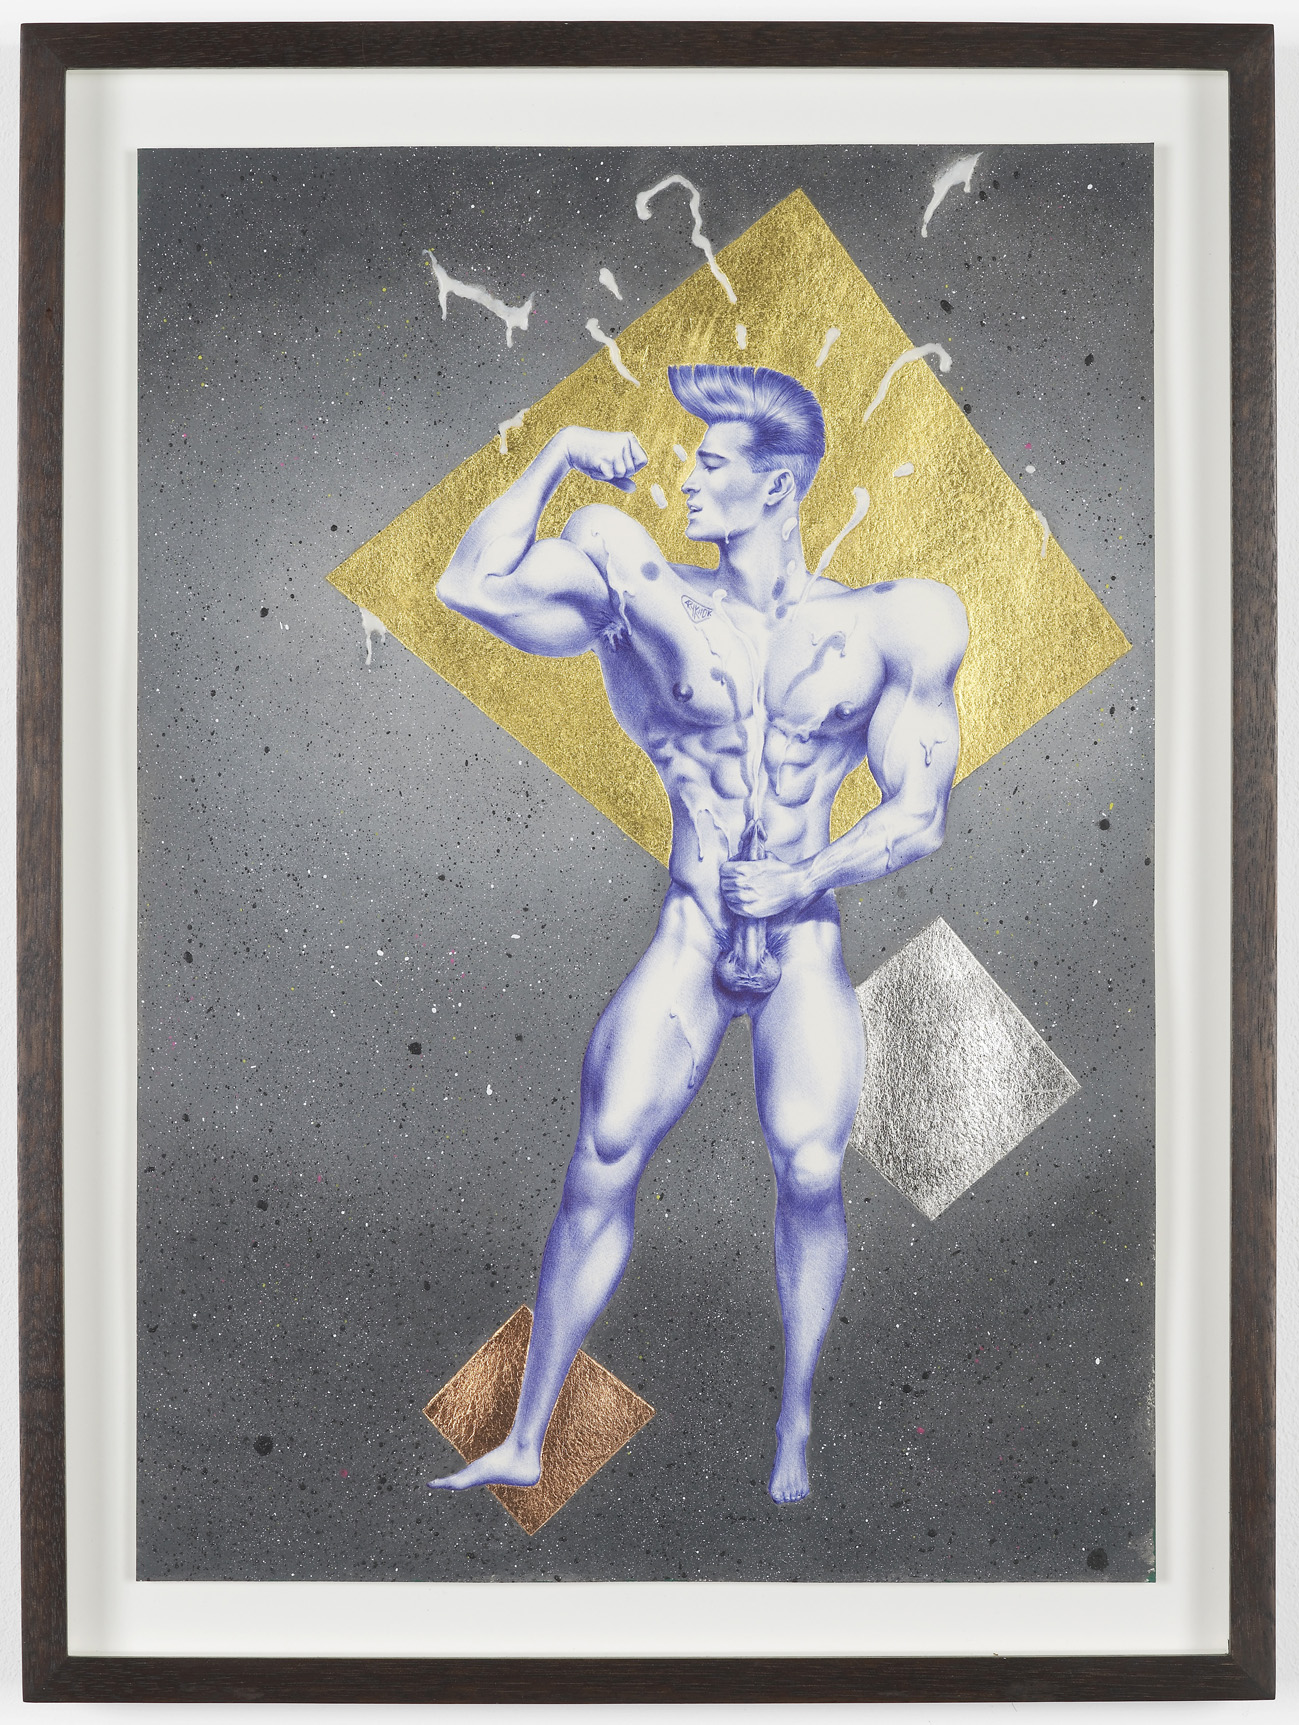 Sticky Subject (1980s) 2013 Ink, acrylic, gold, leaf, copper leaf, palladium and glue on paper: 49 x 36.5 cm / 19.2 x 14.3 in framed